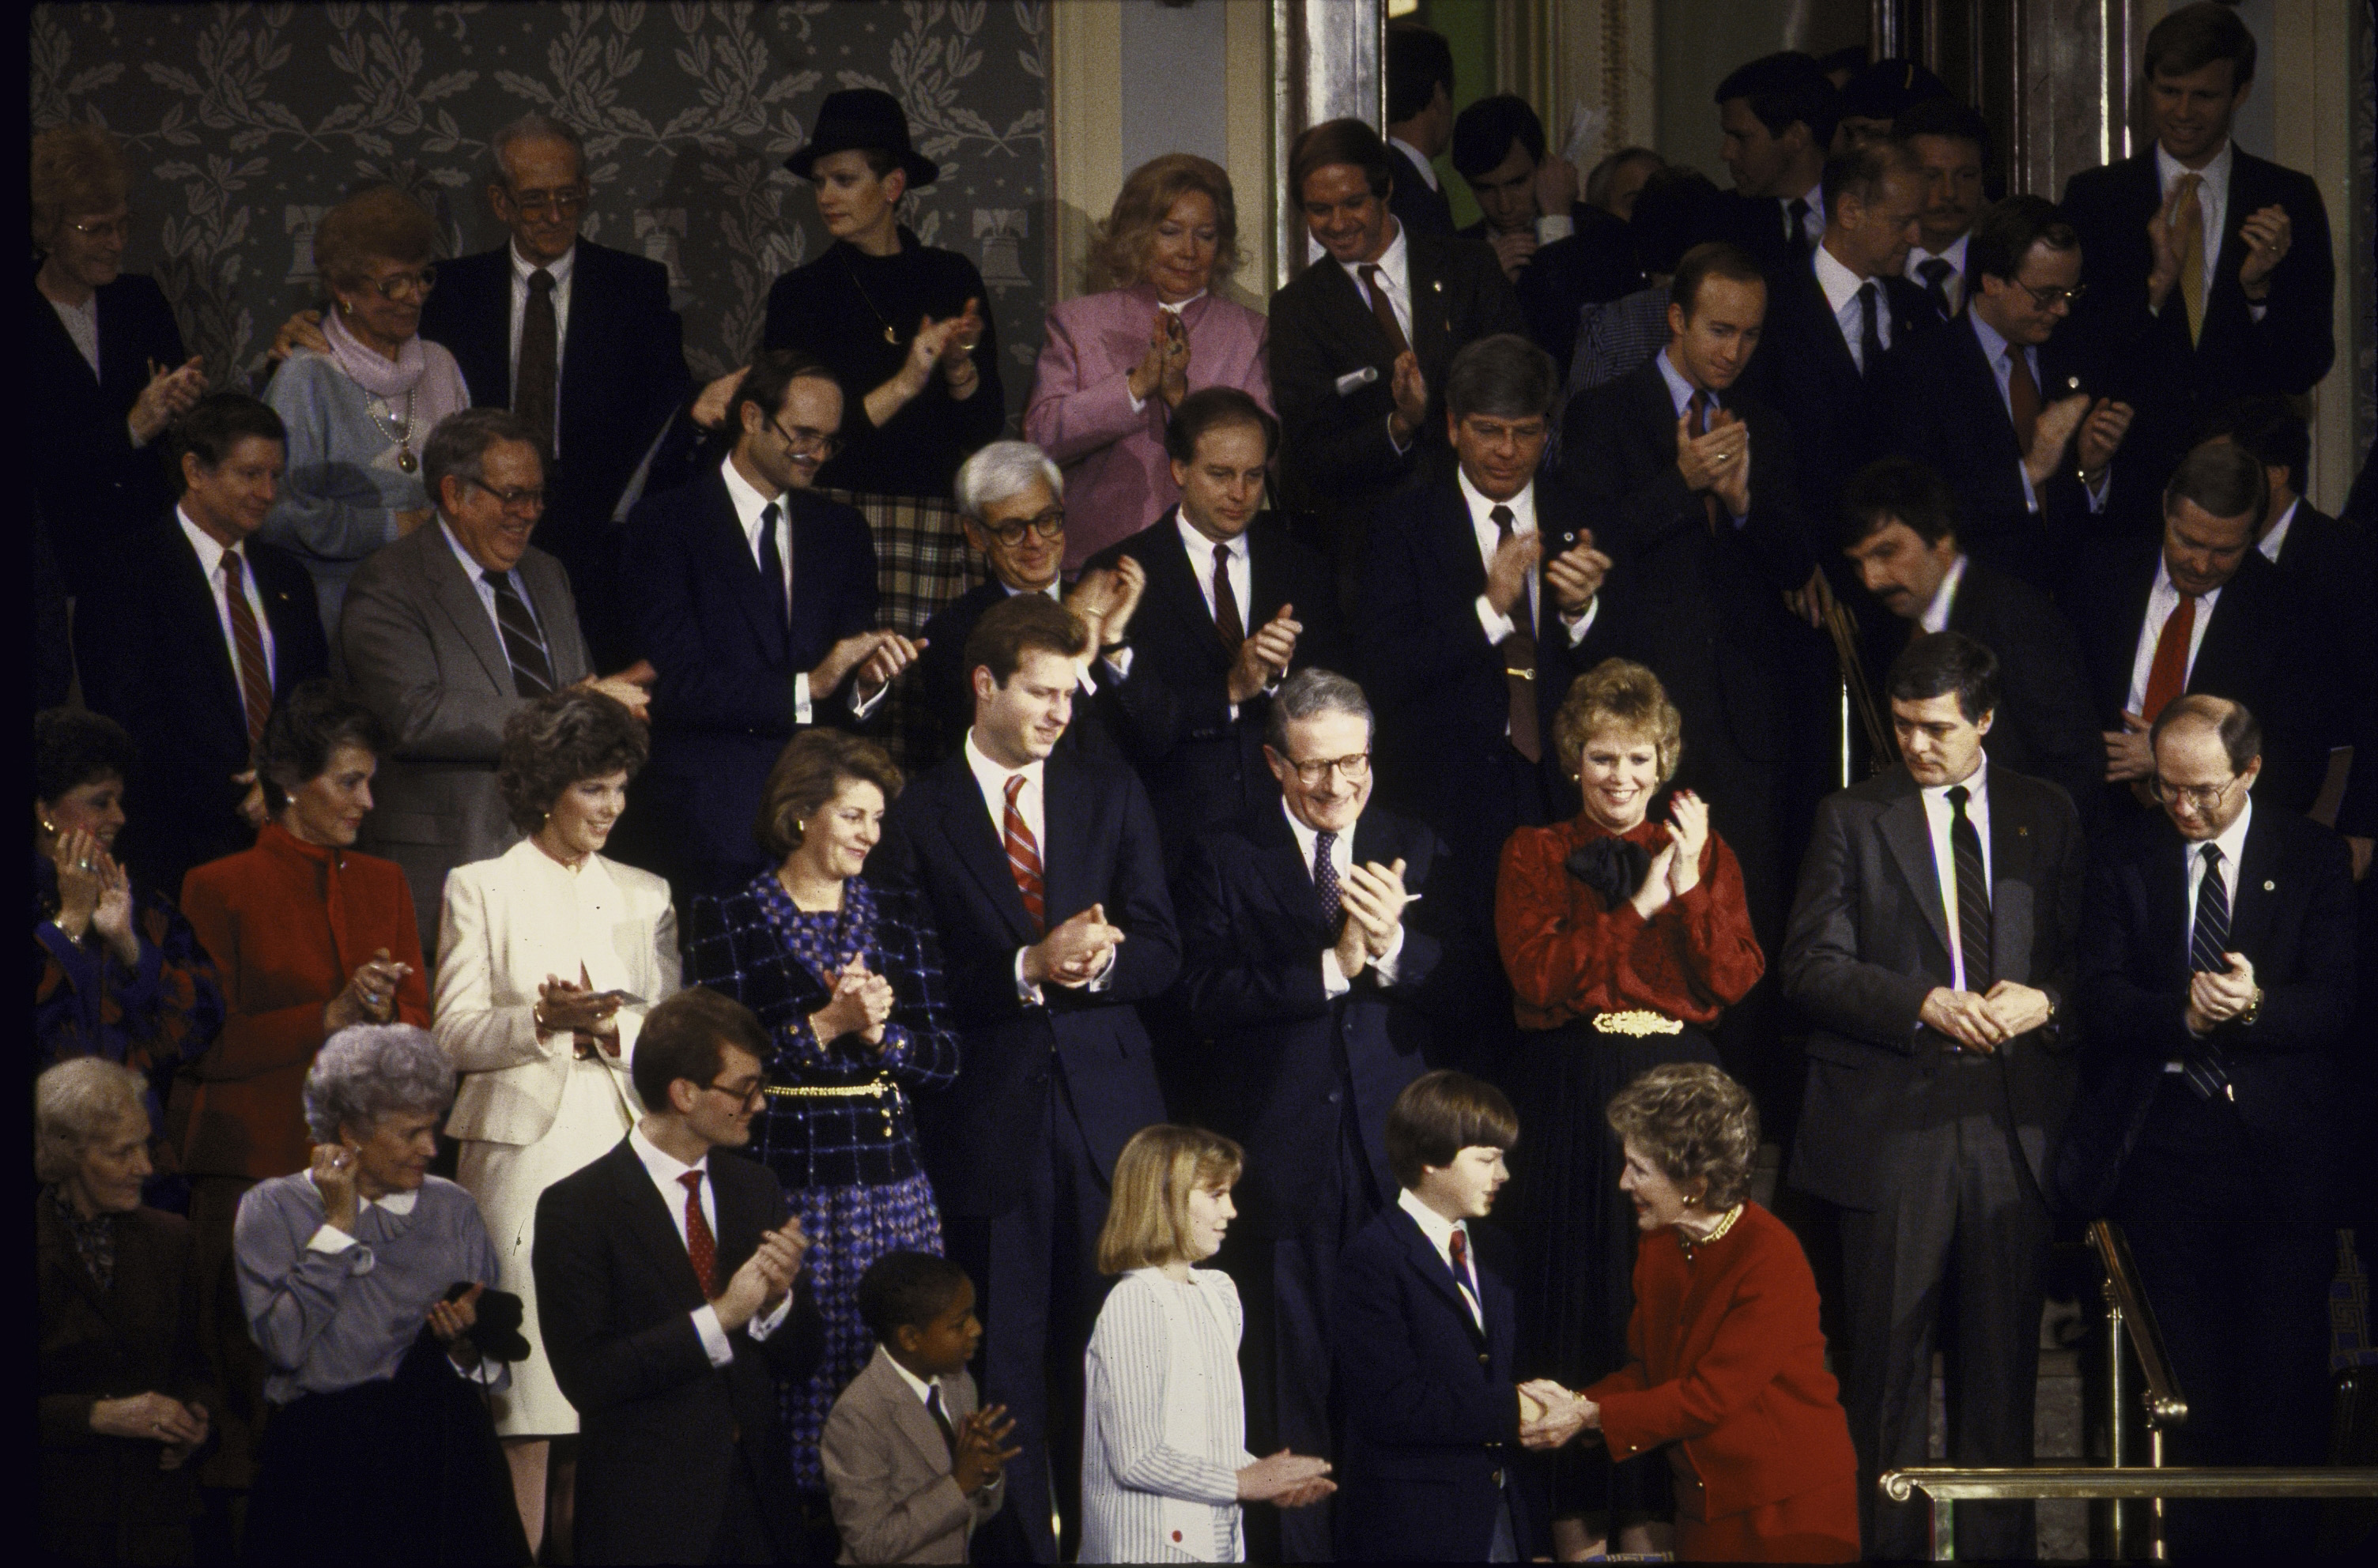 Nancy Reagan attends the State of the Union Address with Trevor Ferrell, Richard Cavioli, Shelby Butler and Tyrone Ford on Feb. 2, 1986.   With the help of his family and local churches, 13-year-old Ferrell delivered food and blankets to the homeless in Philadelphia.